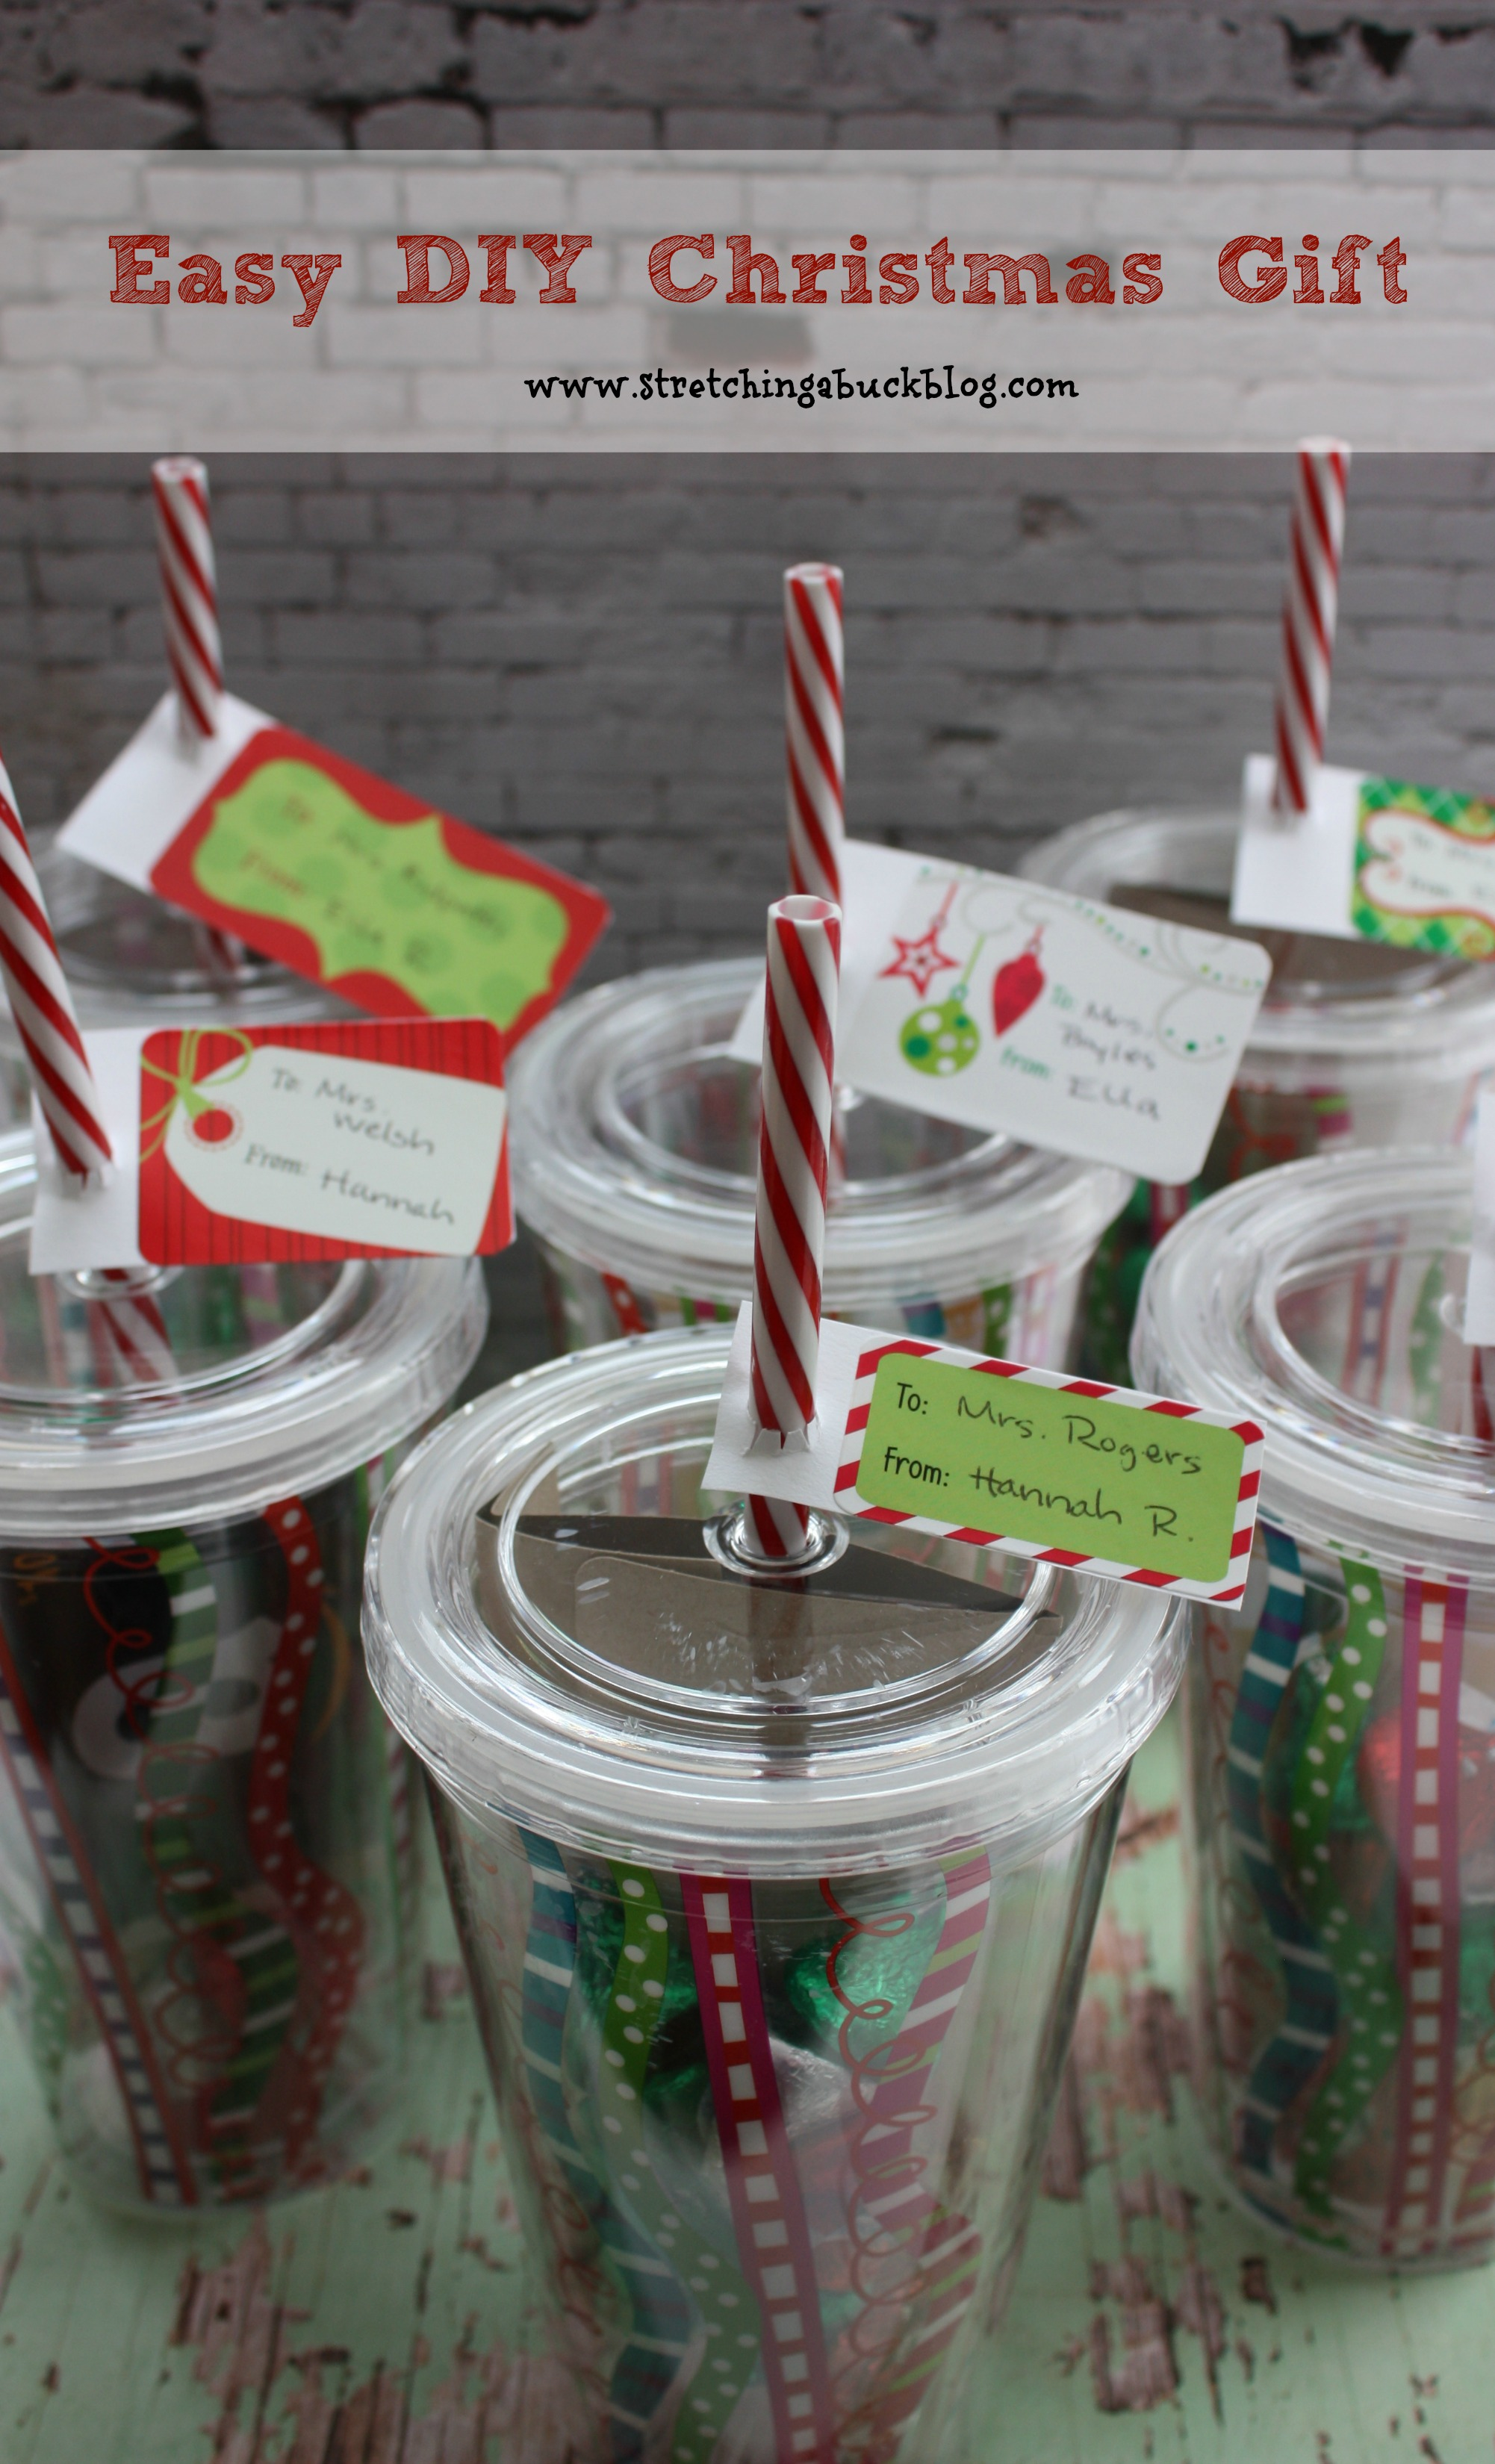 Easy diy christmas gift idea for teachers friends more for Easy presents to make for friends